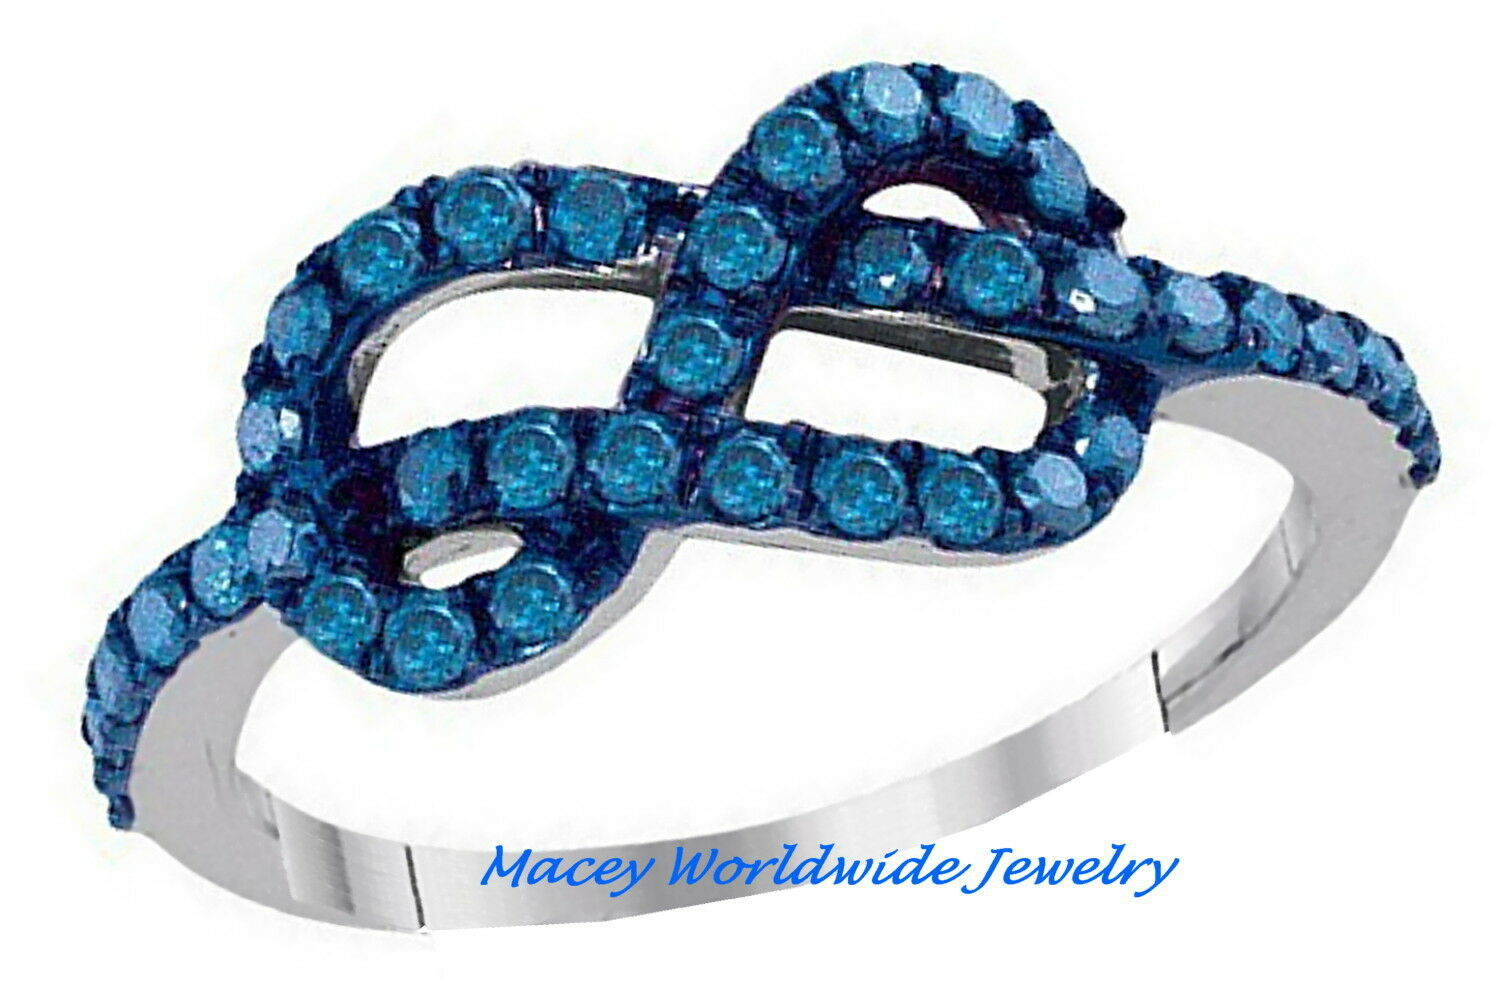 10K White gold Infinity Mediterranean bluee Diamond Loving You Infinity Ring .75C